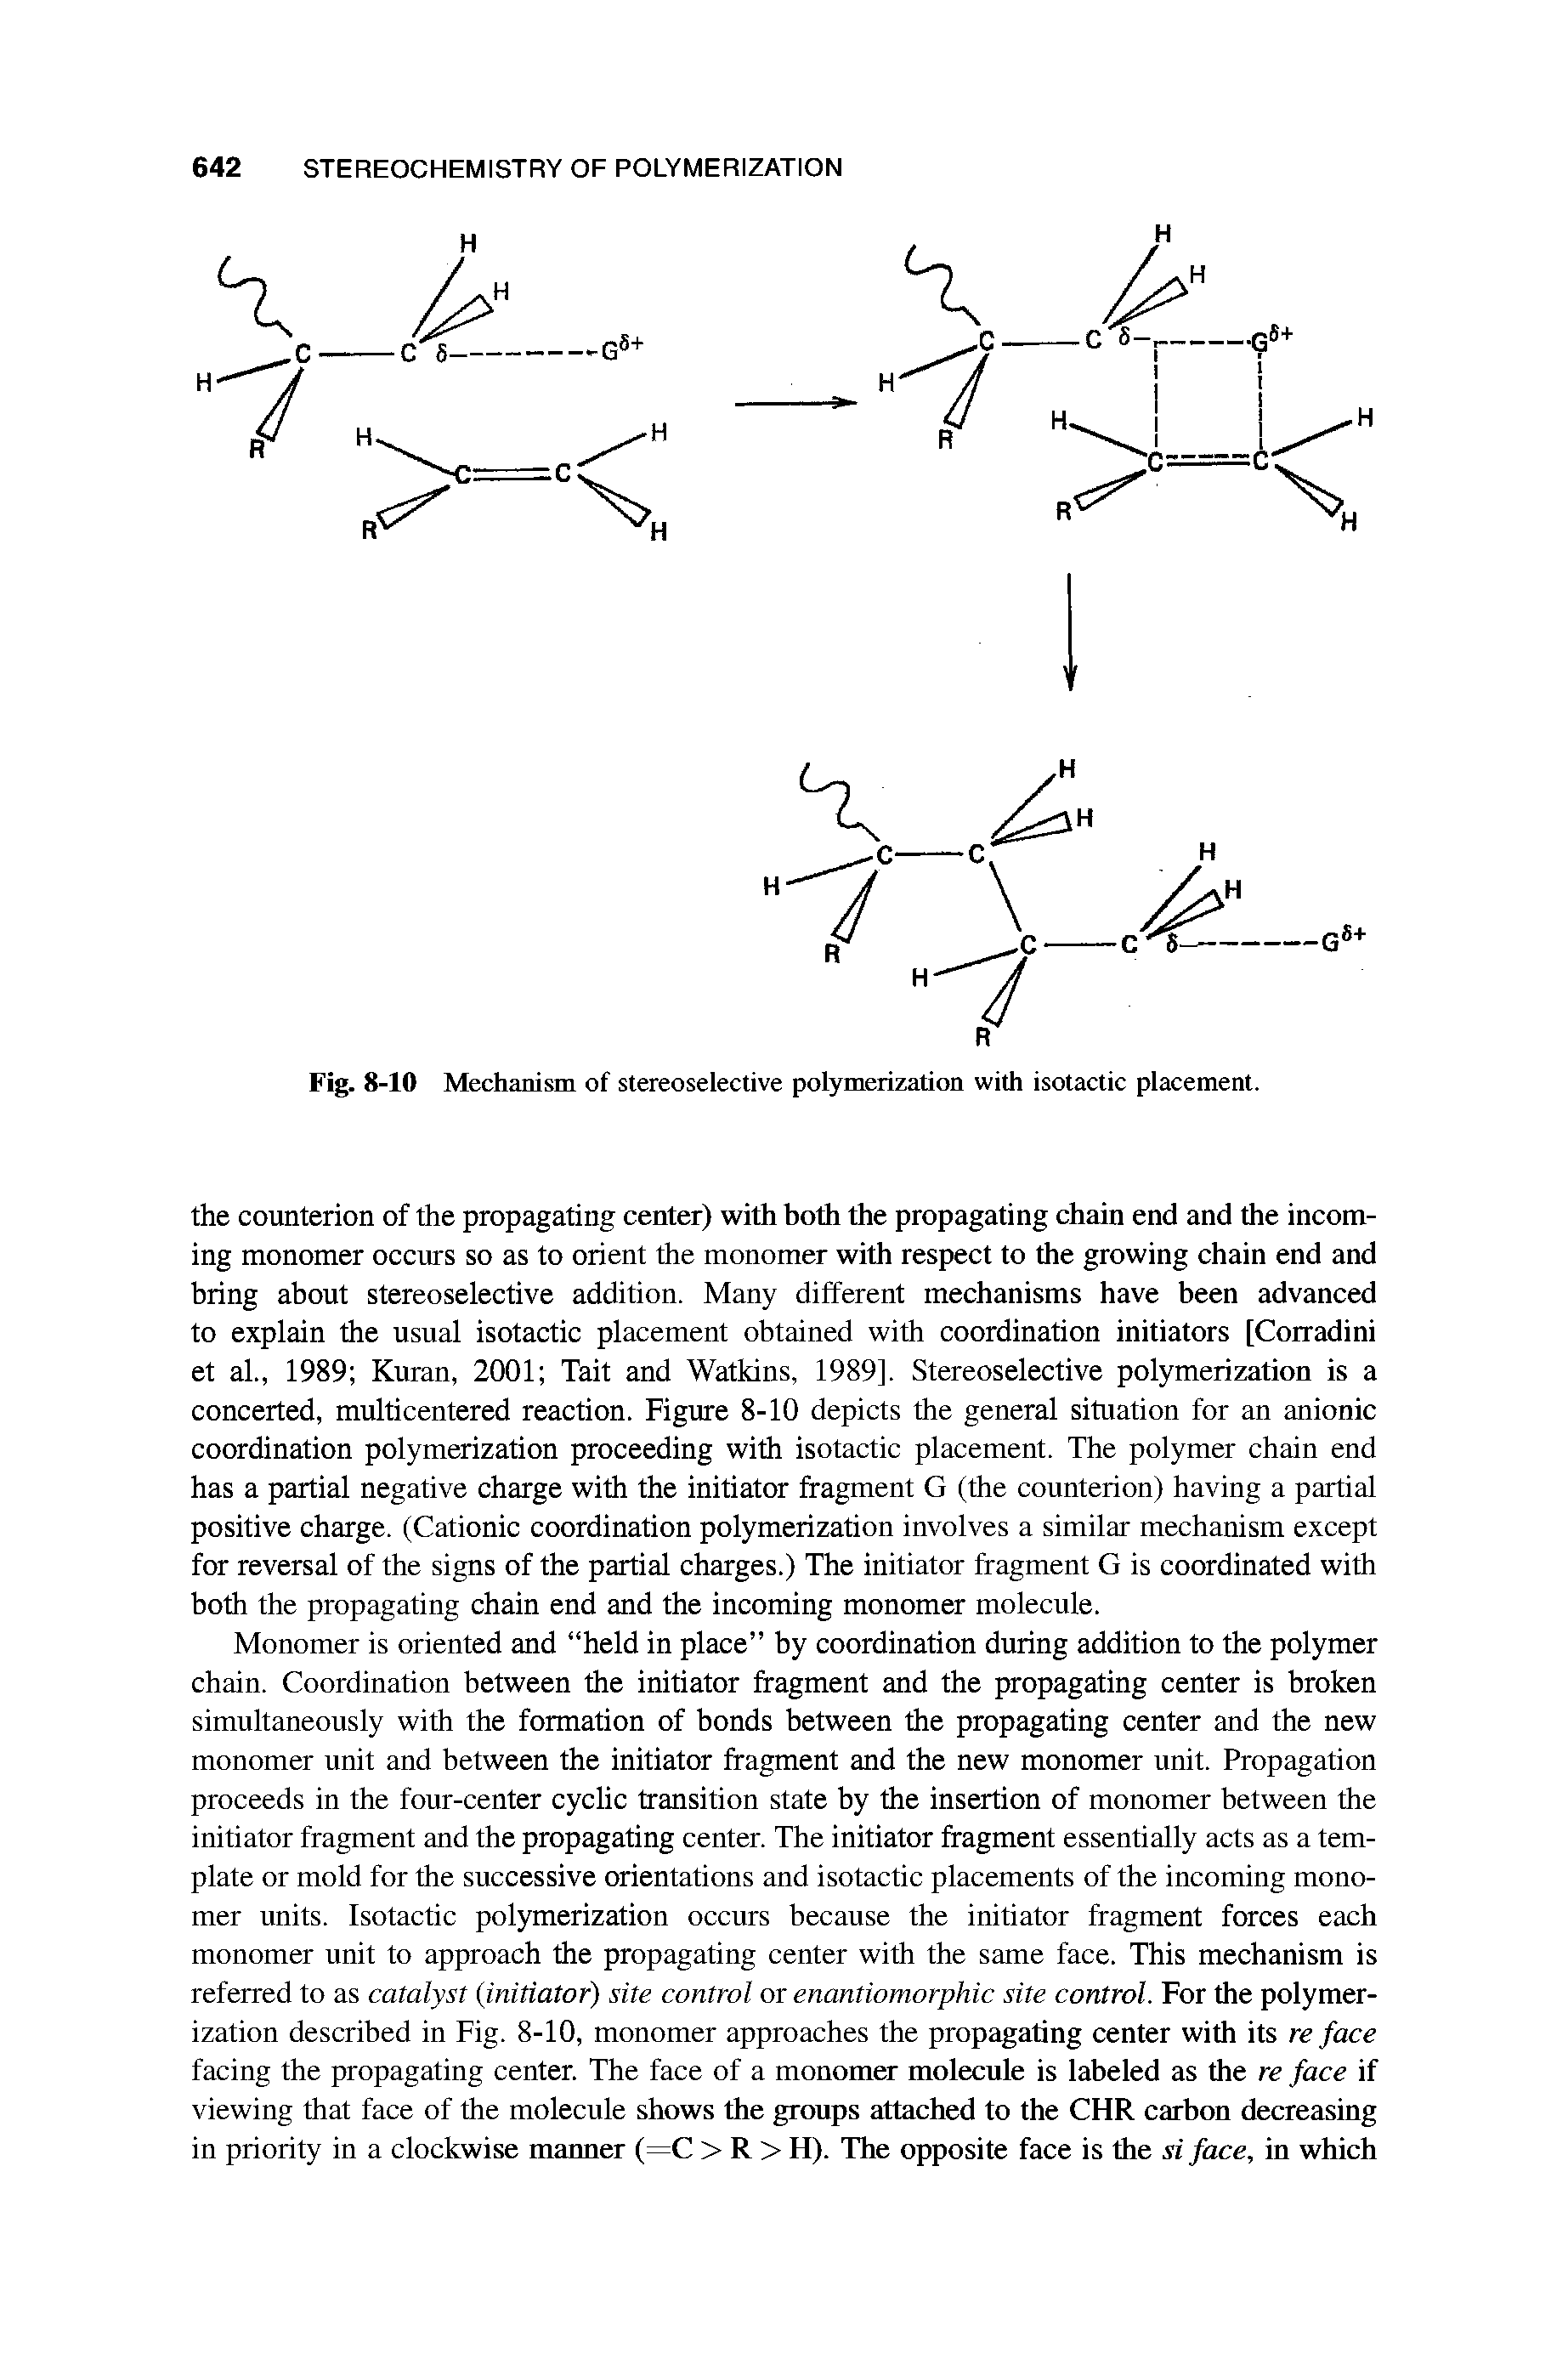 "Fig. 8-10 Mechanism of <a href=""/info/polymerization_stereoselective"">stereoselective polymerization</a> with isotactic placement."